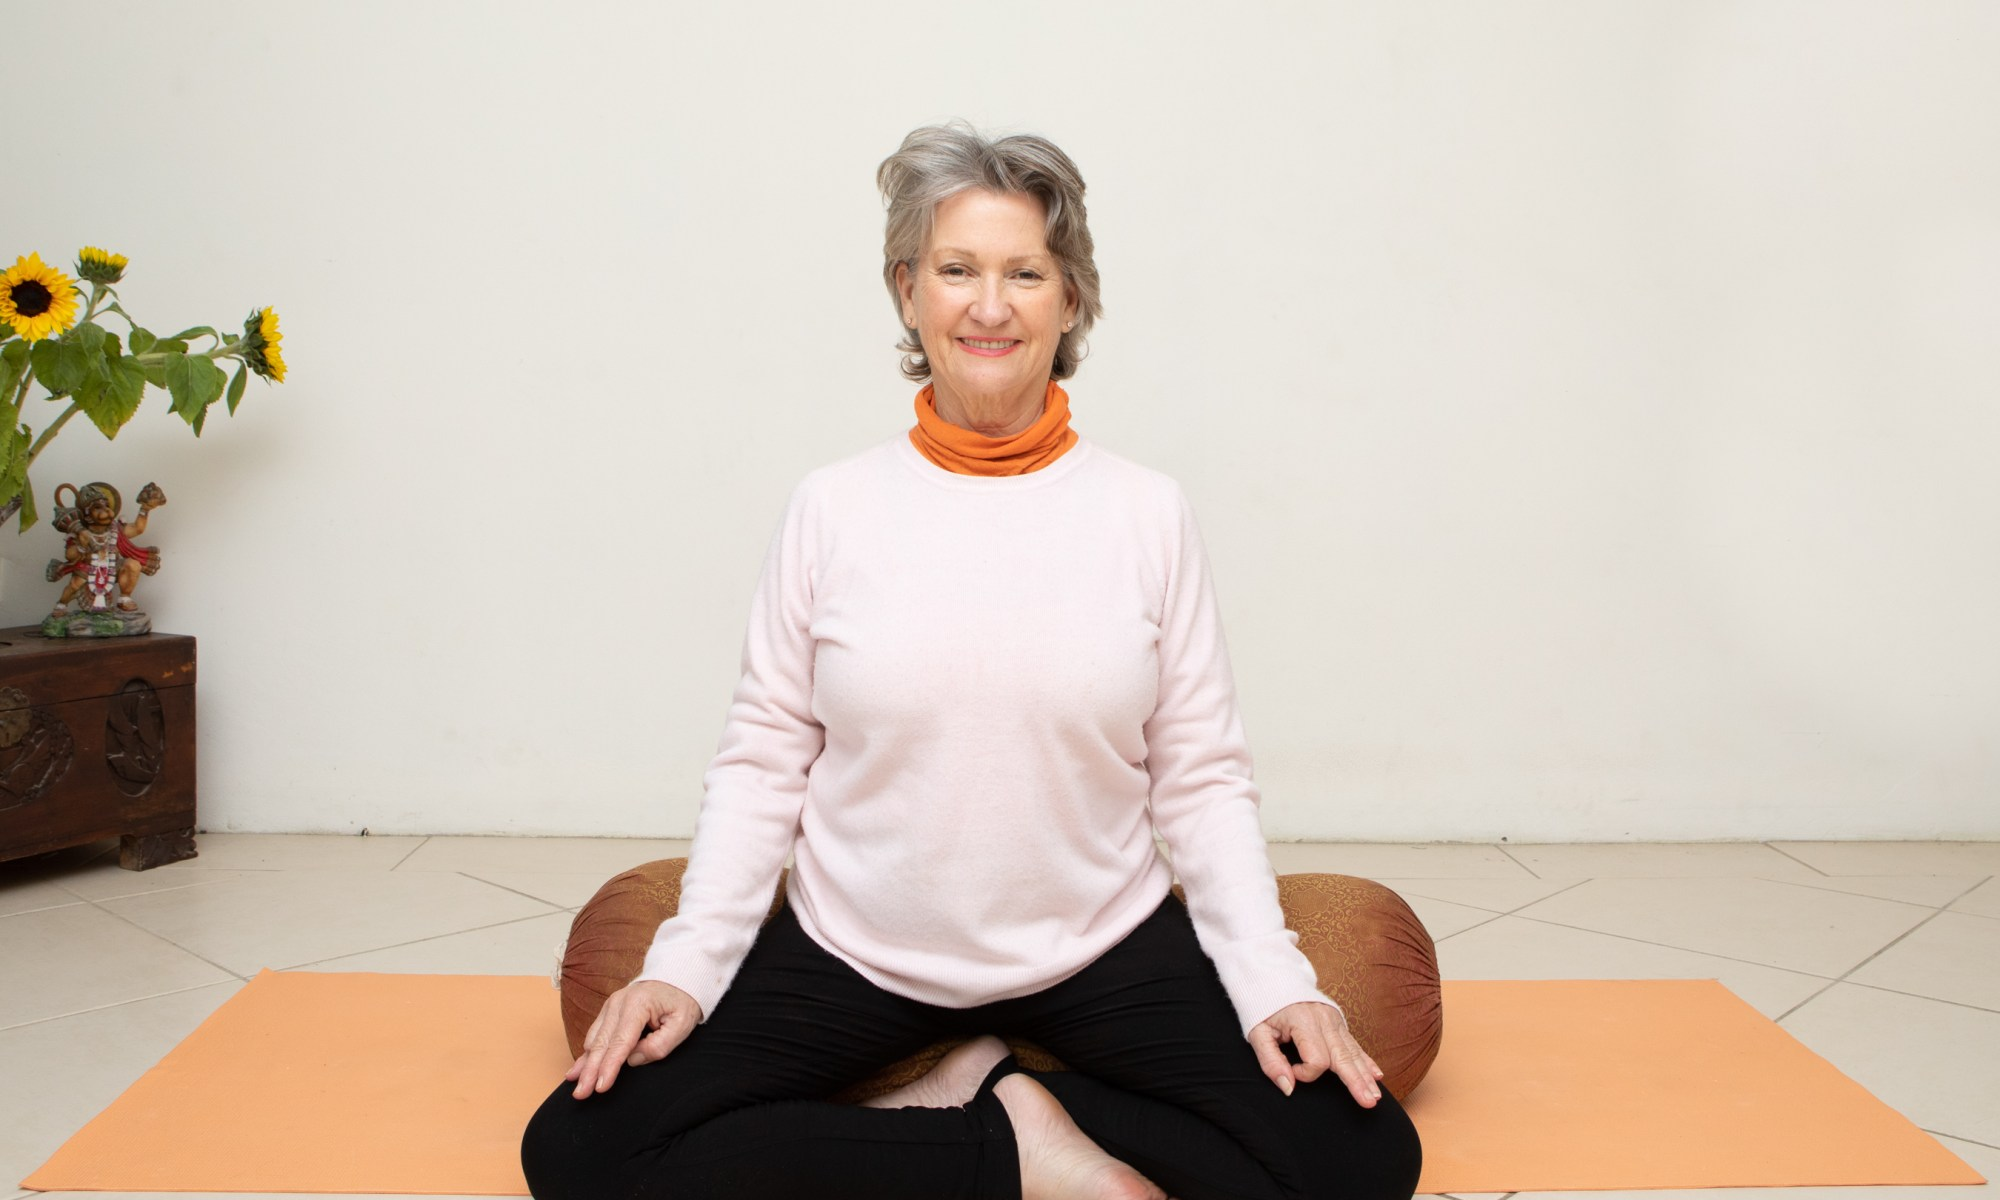 Yoga therapy private practice